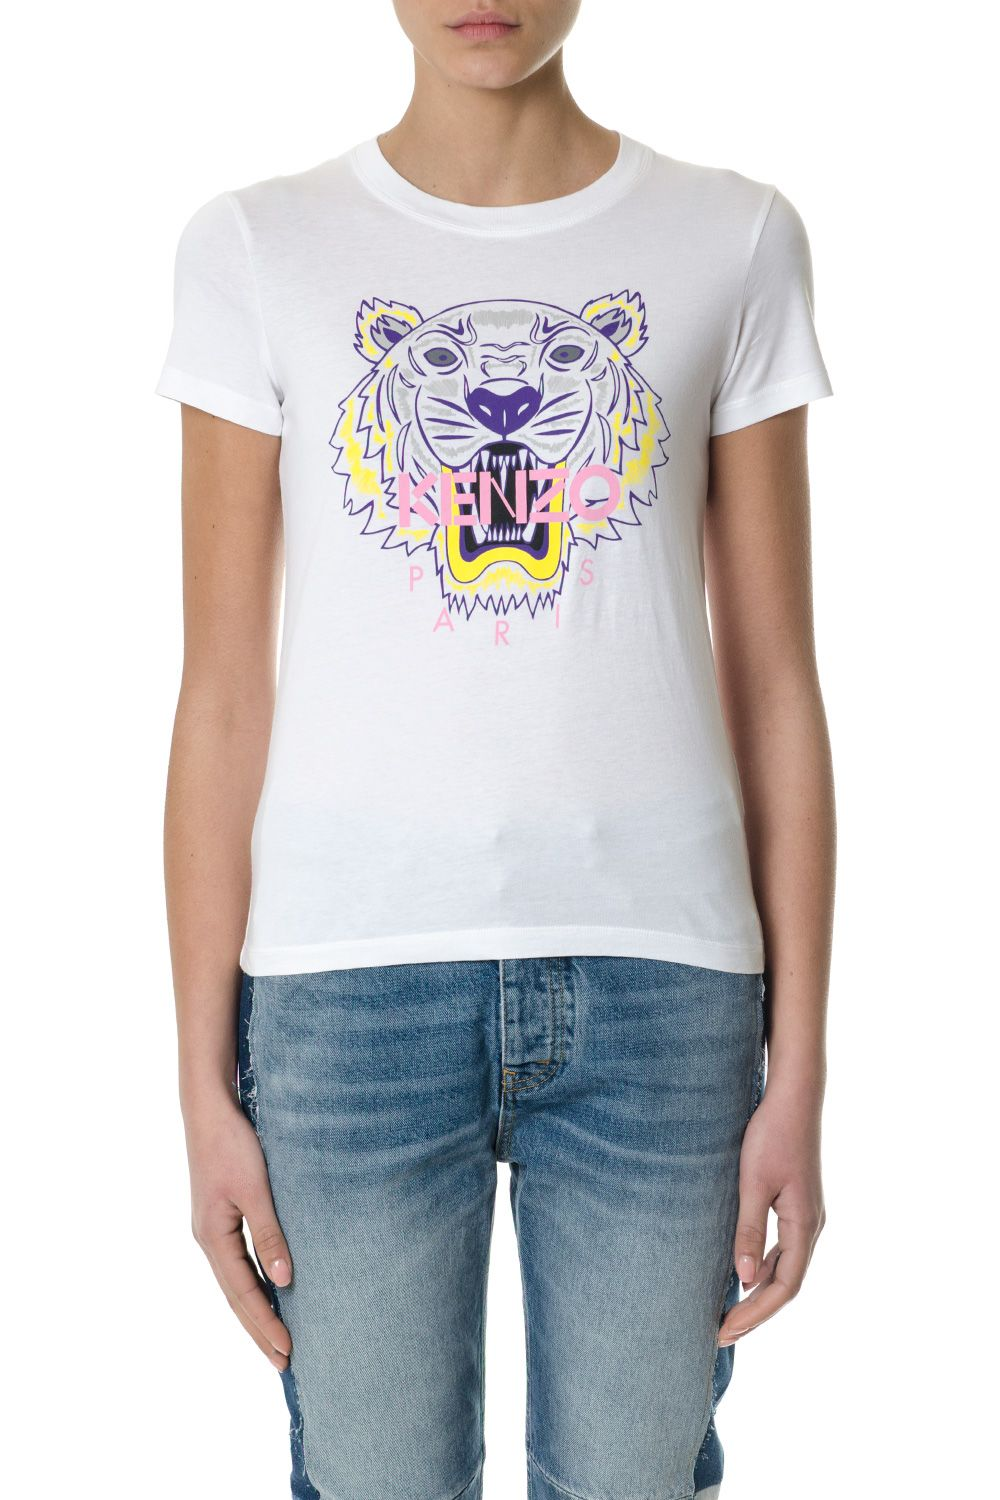 Kenzo White Cotton T-shirt With Tiger